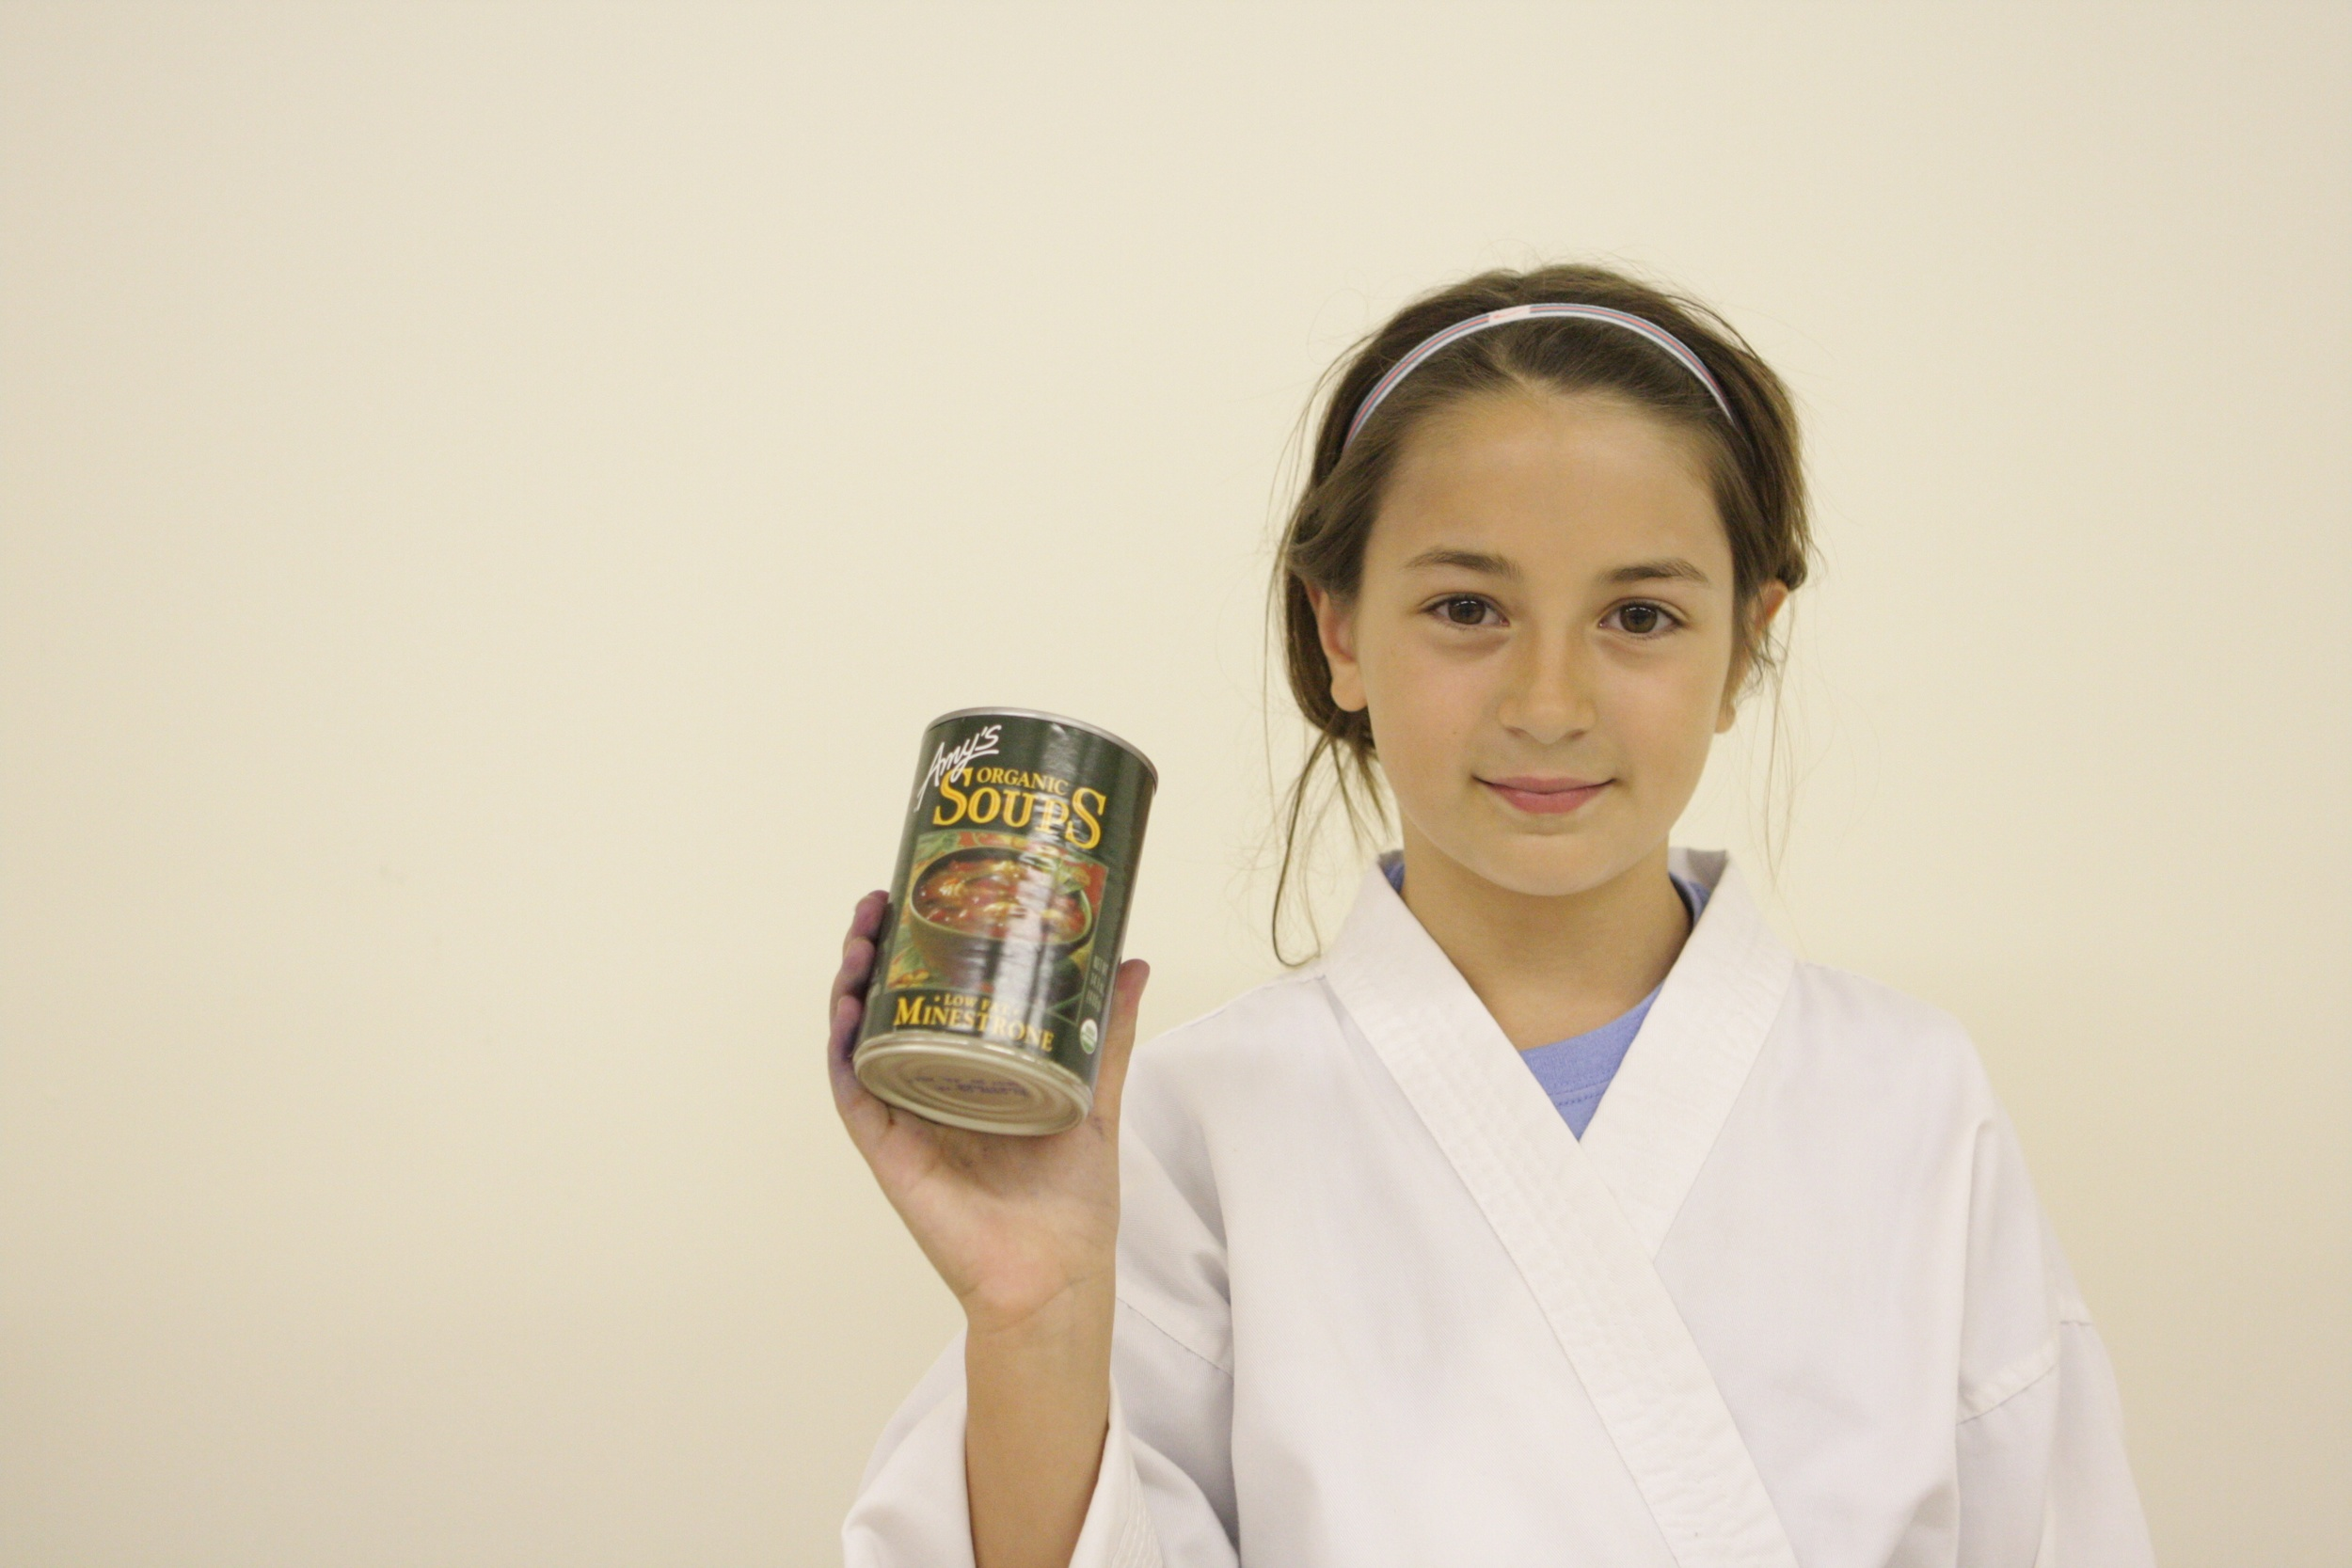 thedojo-food-drive-martial-arts-karate-kids-doing-community-service-in-rutherford-nj_14484670257_o.jpg